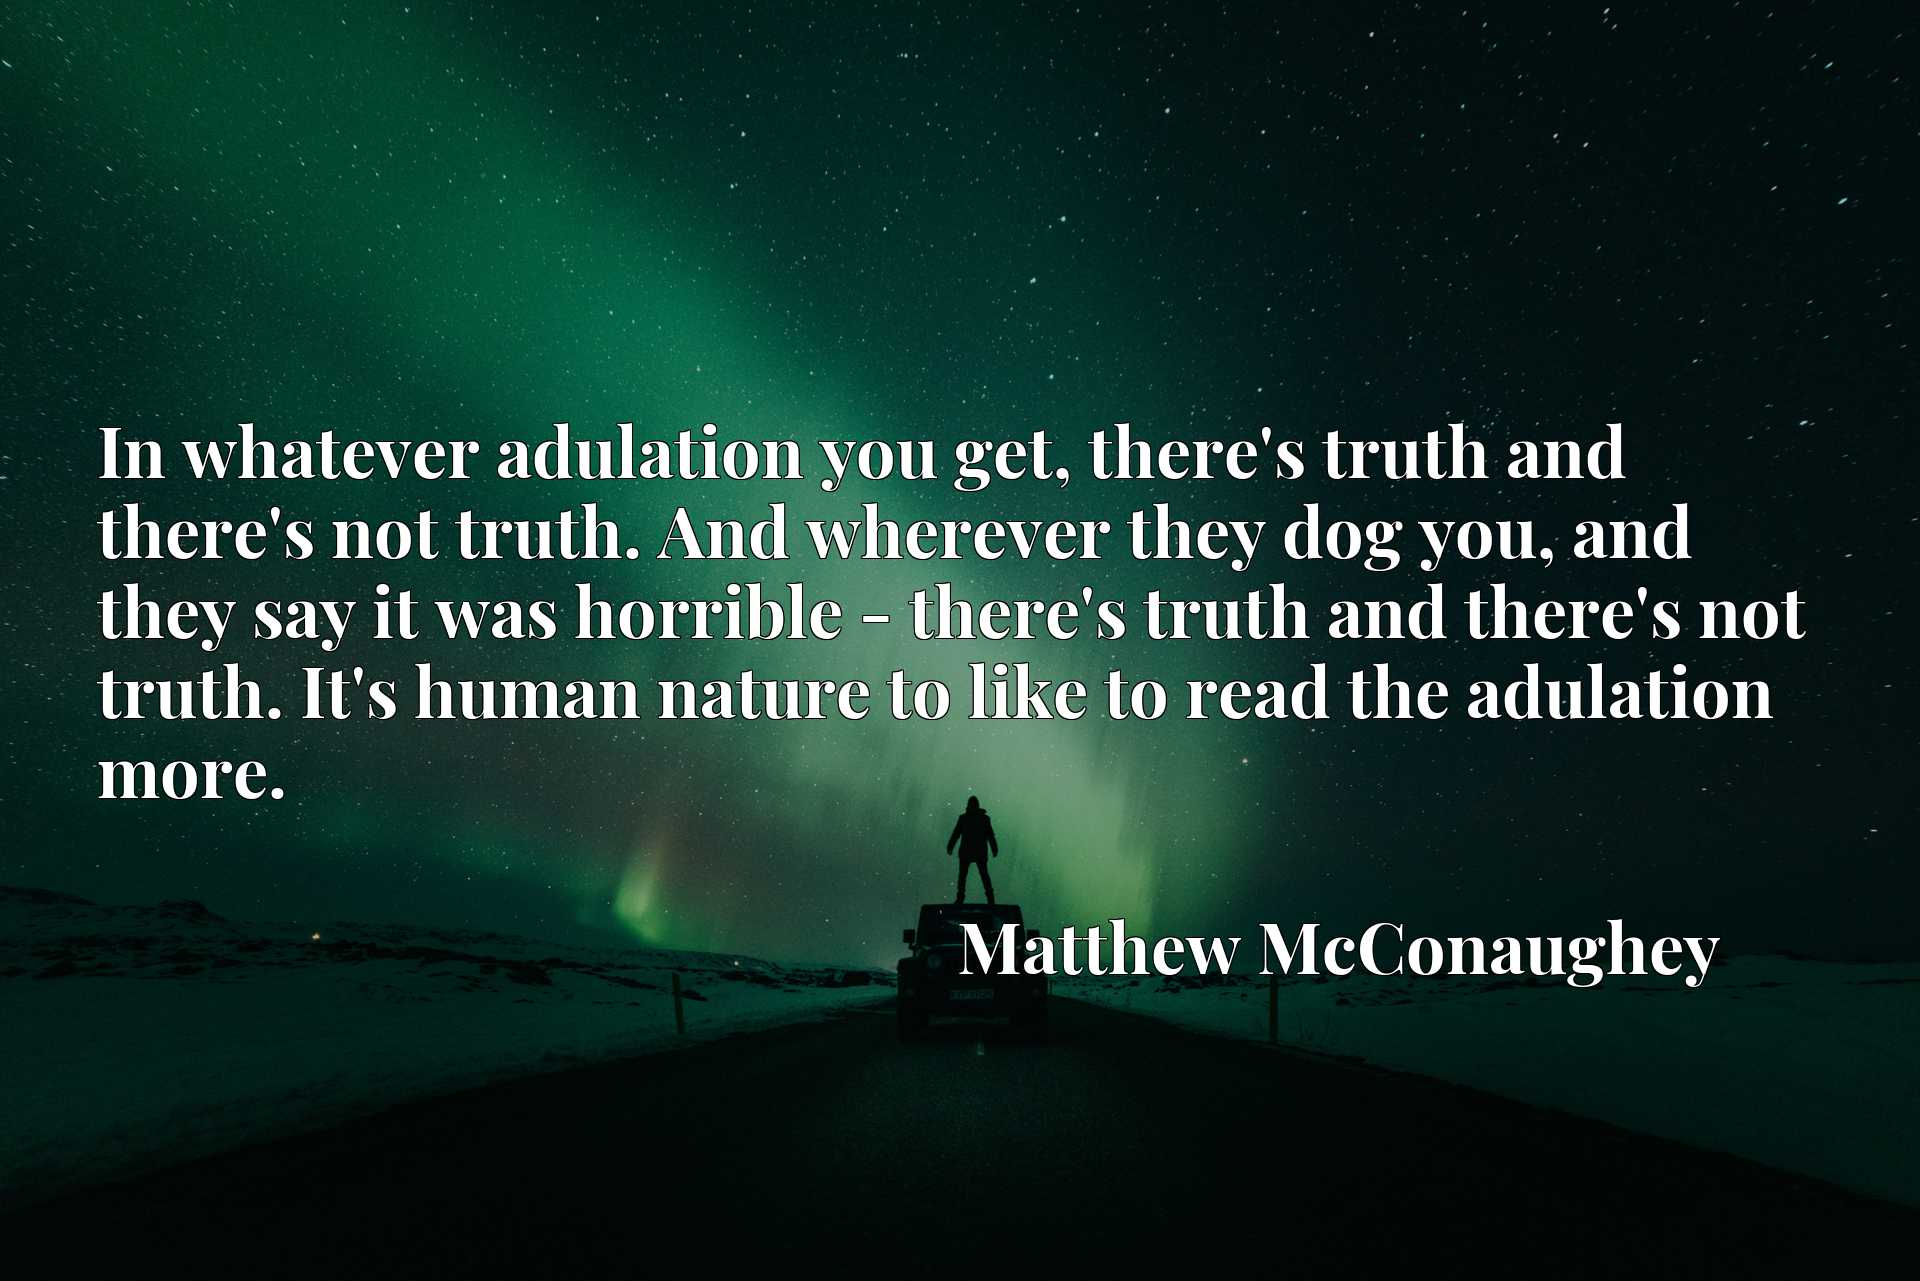 In whatever adulation you get, there's truth and there's not truth. And wherever they dog you, and they say it was horrible - there's truth and there's not truth. It's human nature to like to read the adulation more.